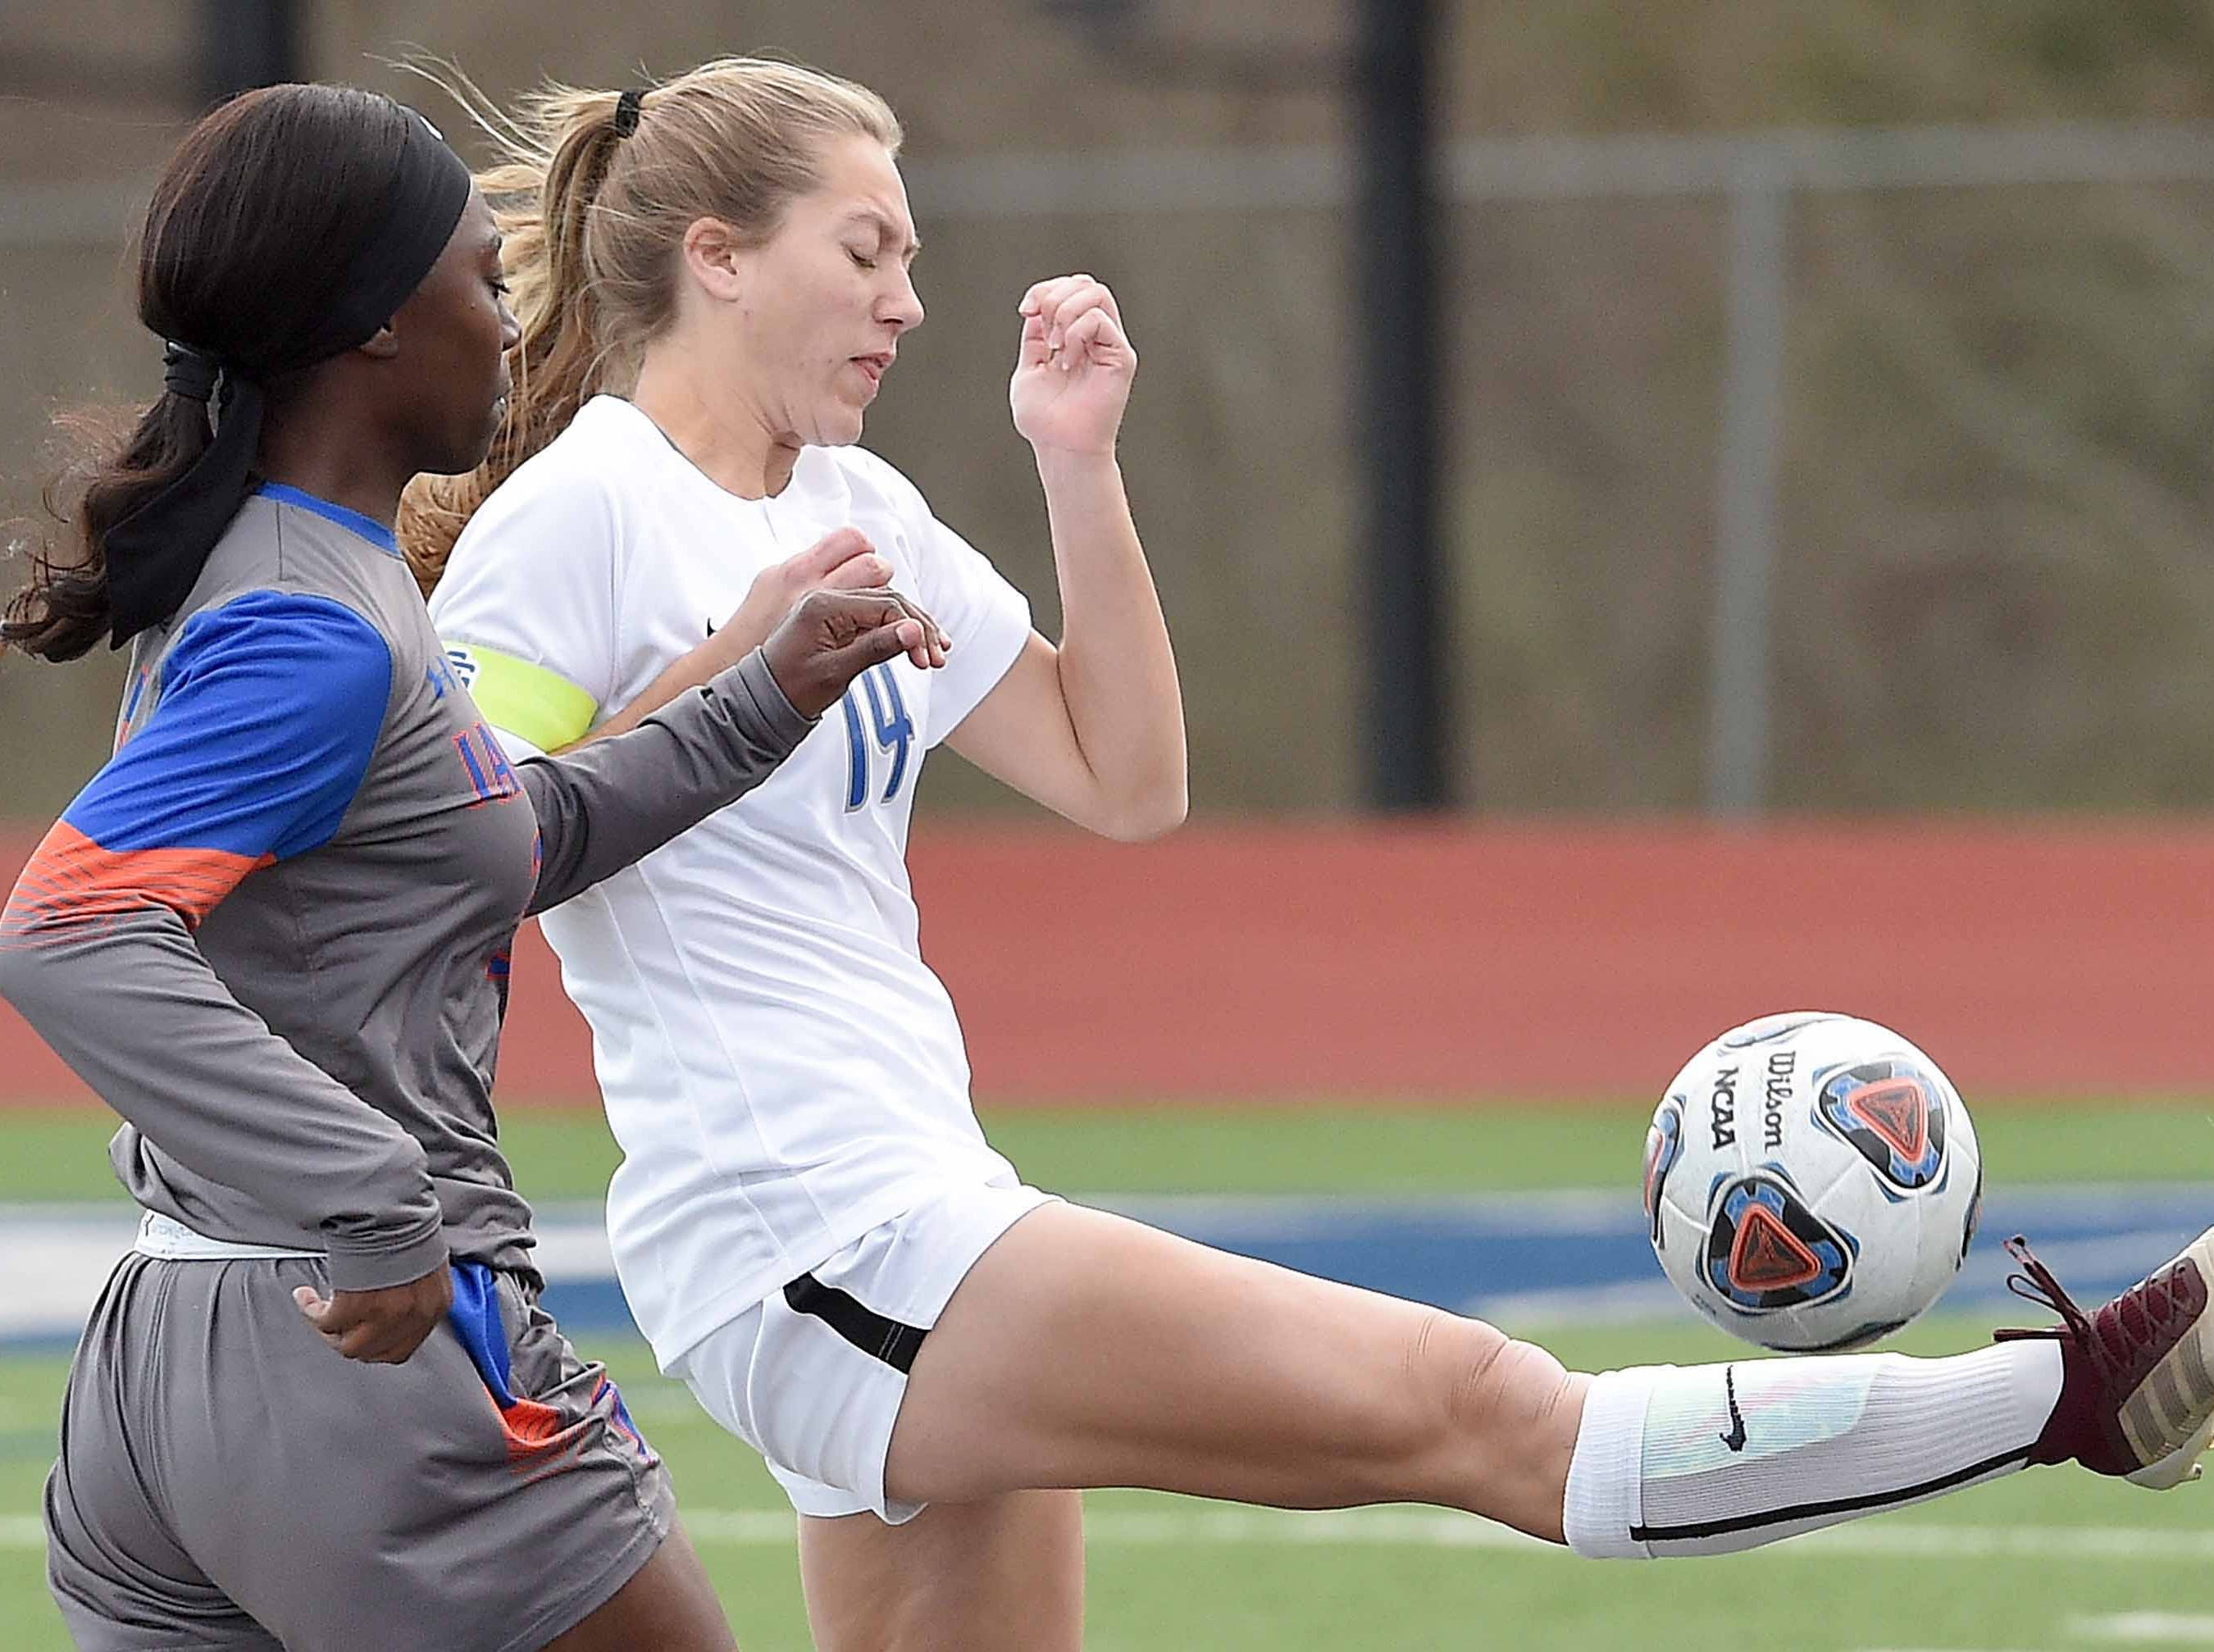 Ocean Springs' Kaylee Foster (14) clears the ball against Madison Central in the Class 6A state championship in the MHSAA BlueCross Blue Shield of Mississippi Soccer Classic on Saturday, February 9, 2019, at Ridgeland High School in Ridgeland, Miss.